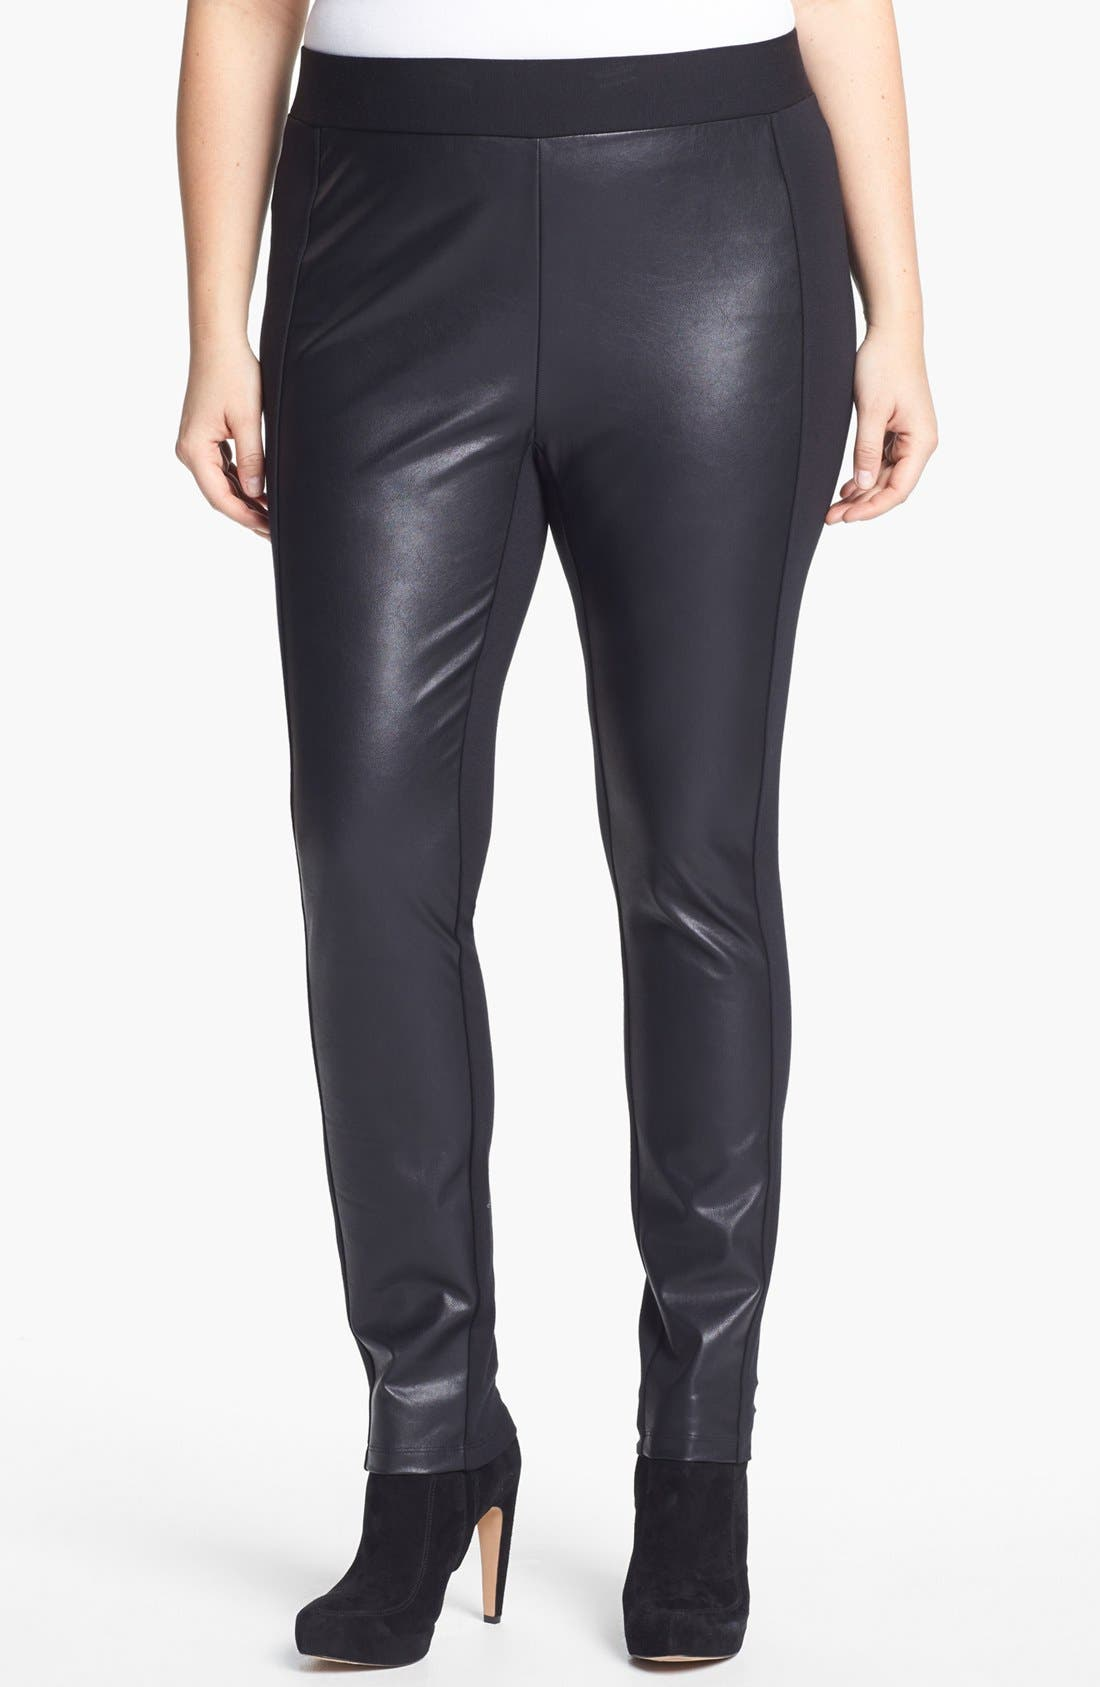 Alternate Image 1 Selected - NYDJ Faux Leather & Ponte Knit Pants (Plus Size)